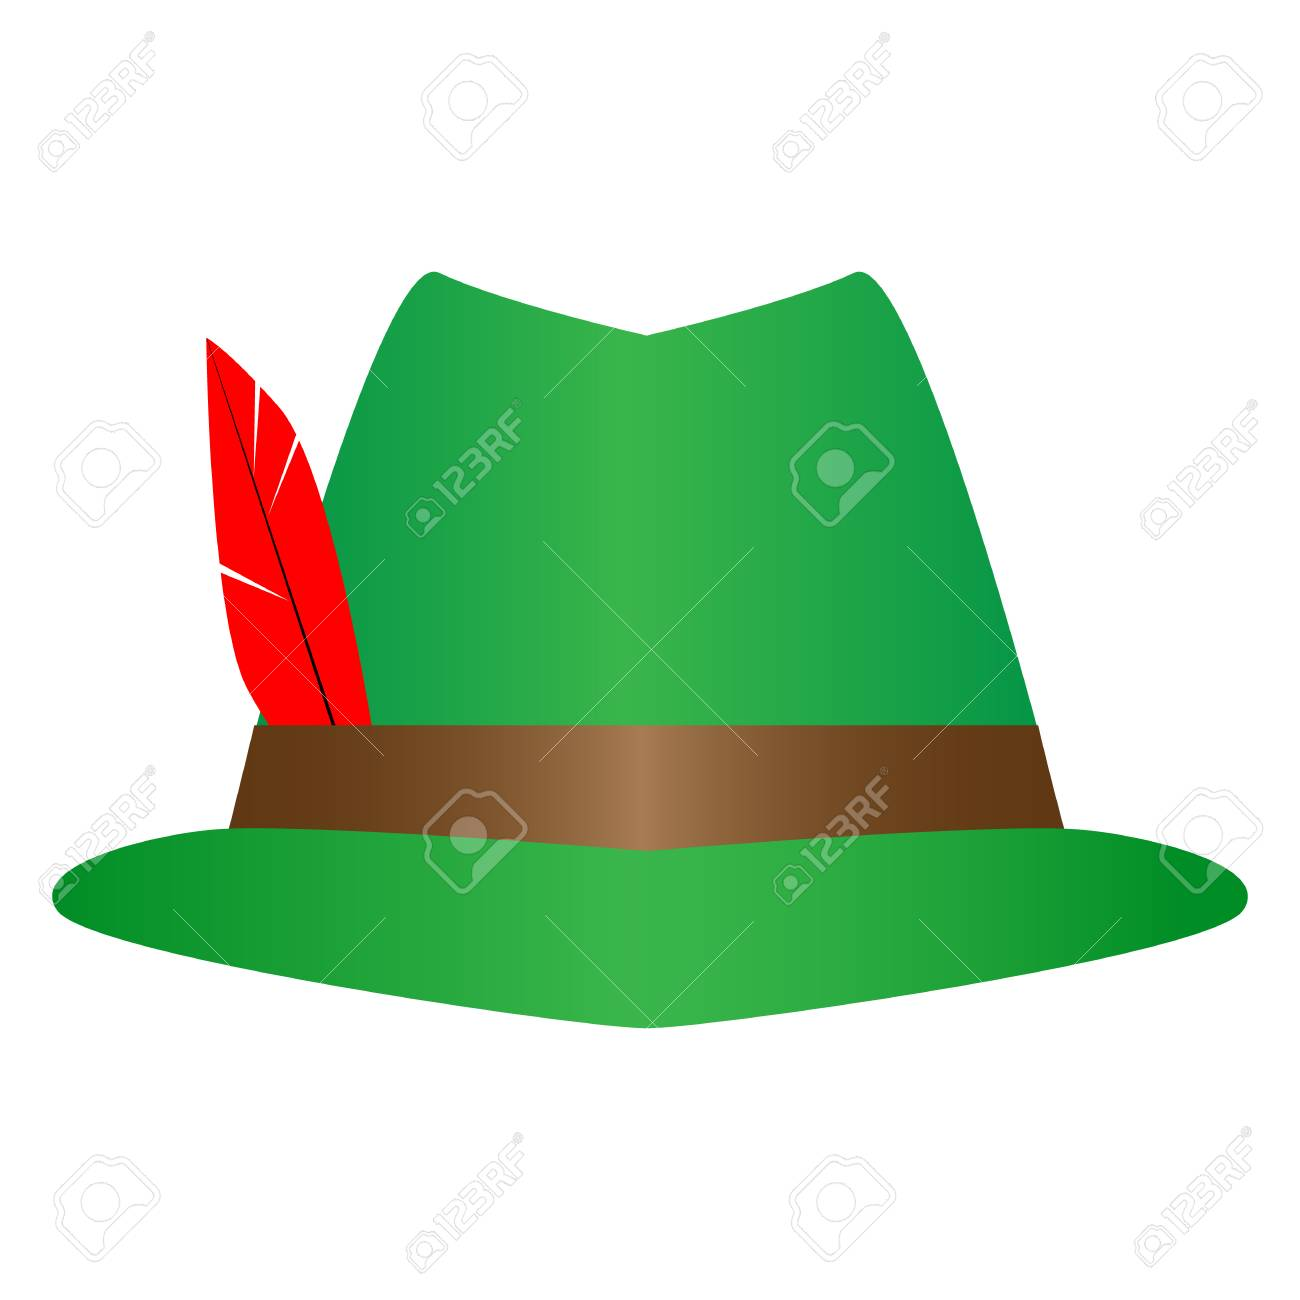 c3d55b57be3 Green German Alpine Octoberfest hat with red feathers. Hunter hat with  feather Illustration